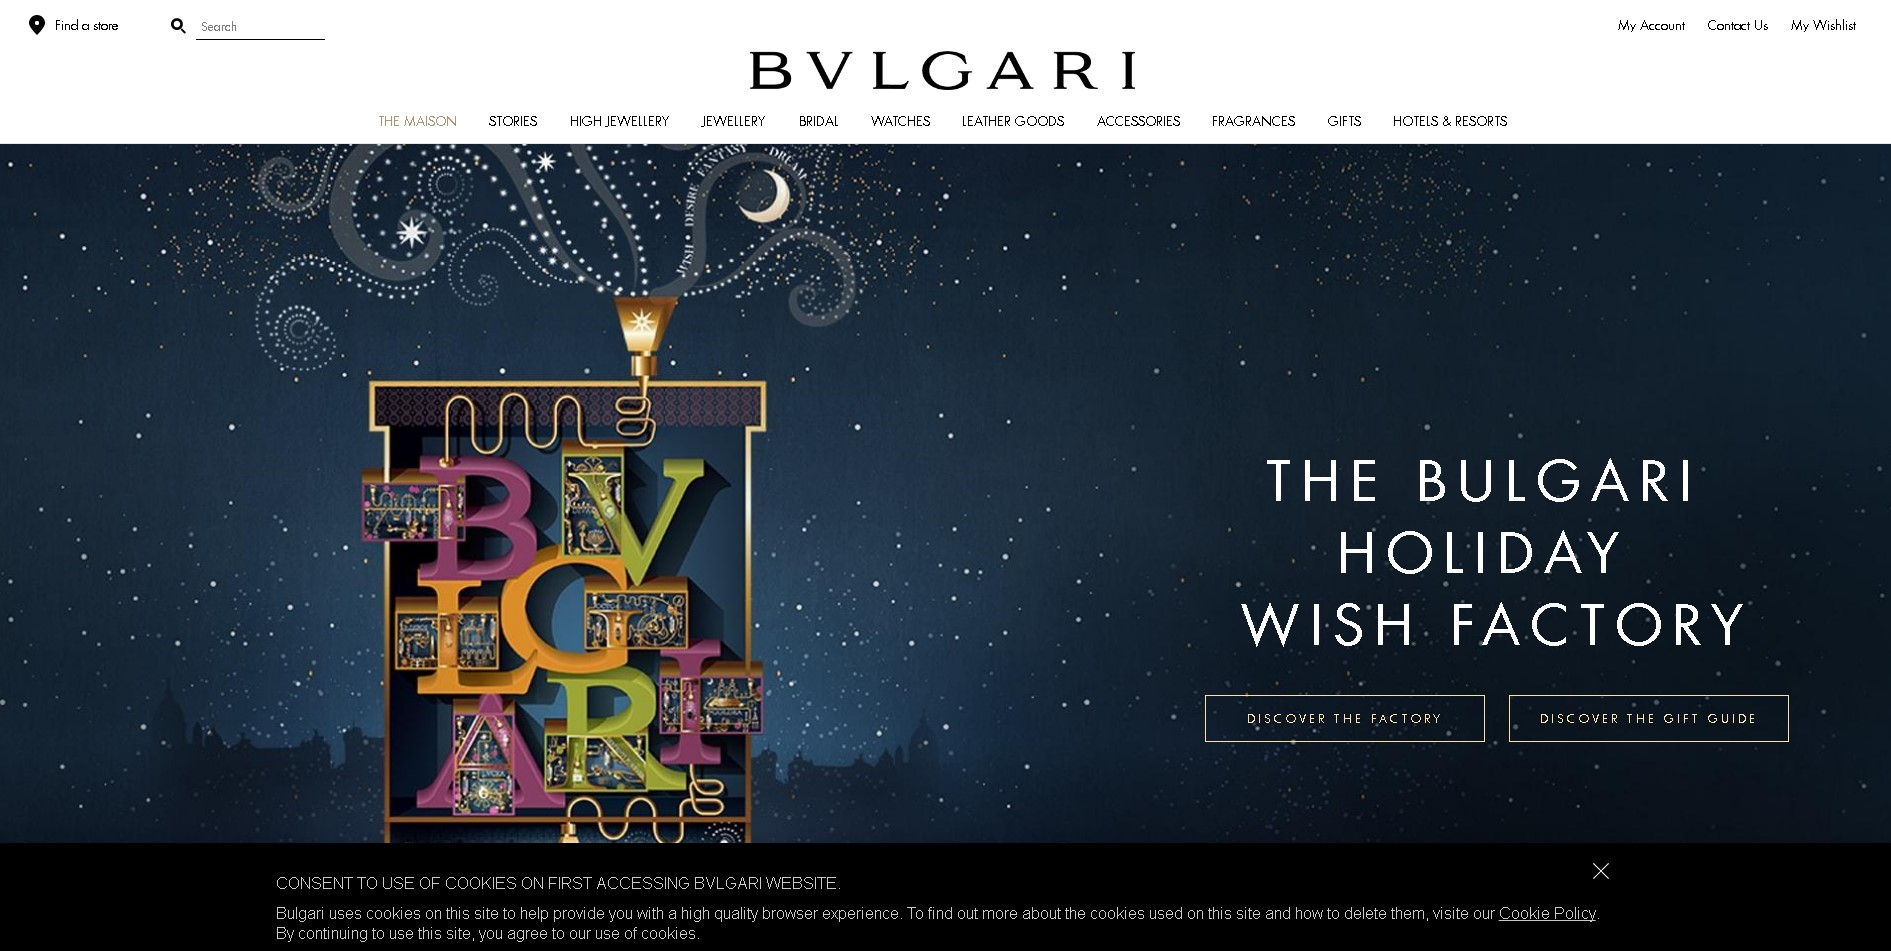 bulgari website